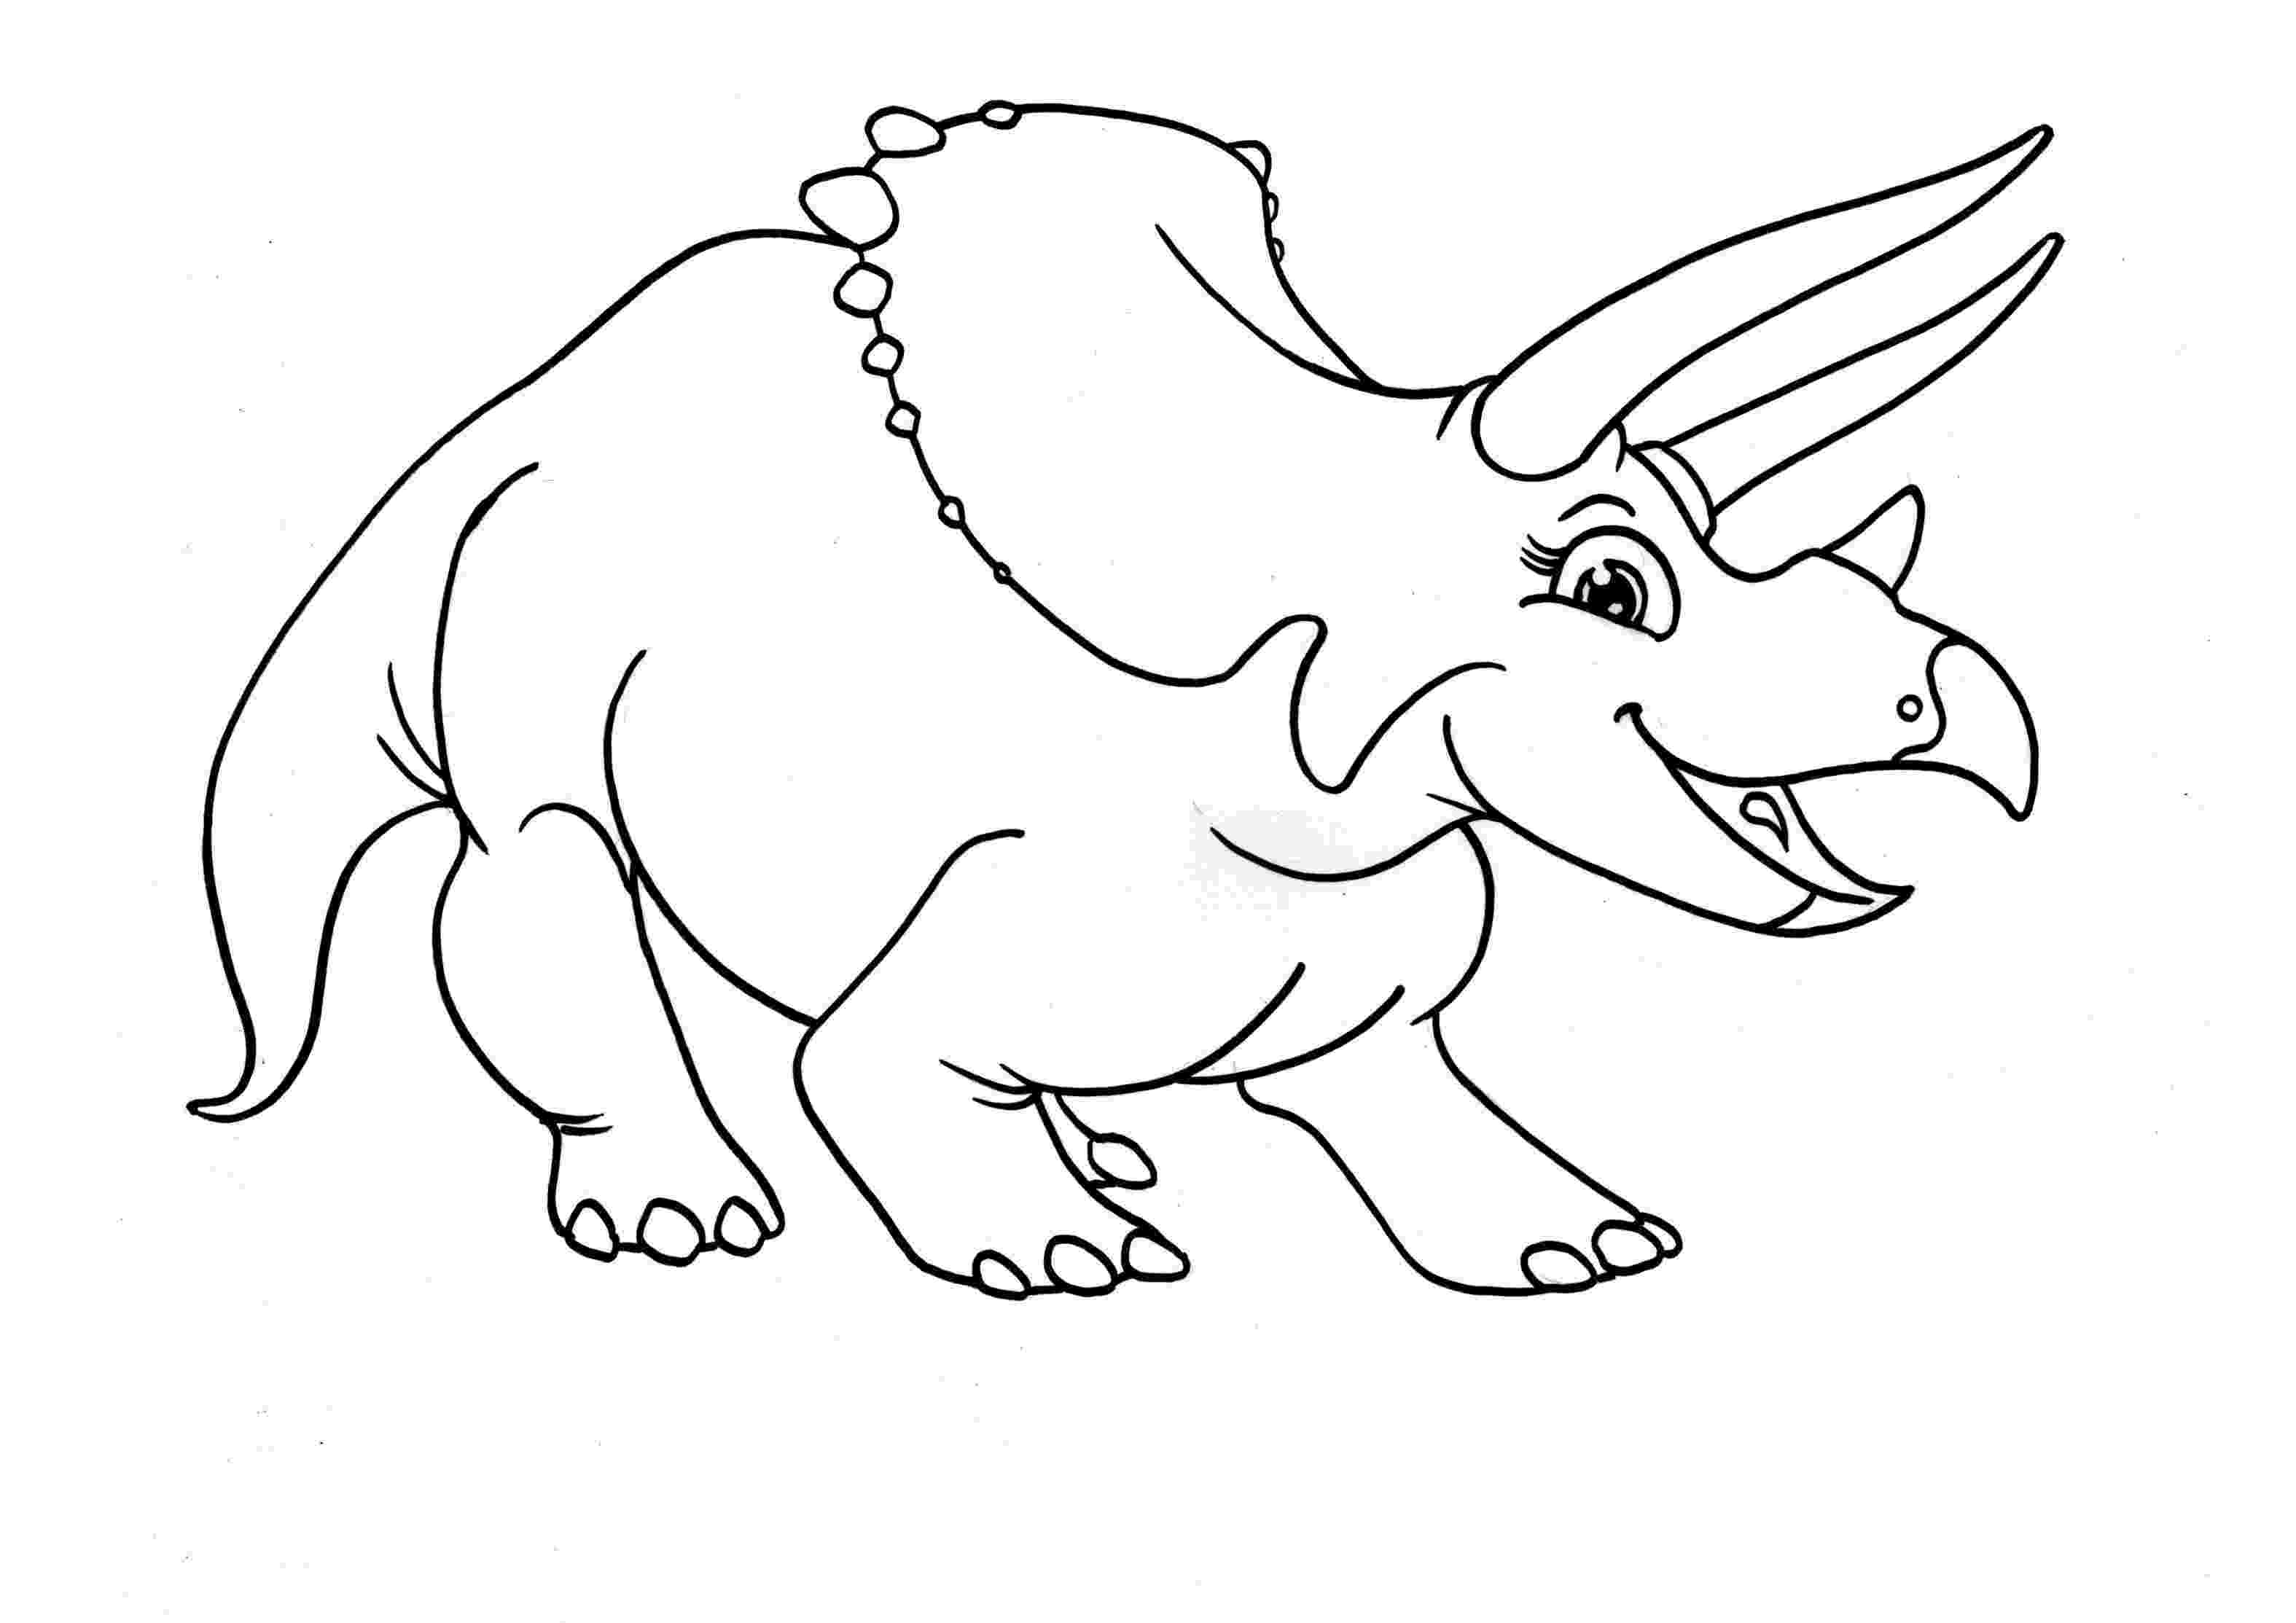 triceratops pictures to color free printable triceratops coloring pages for kids to pictures color triceratops